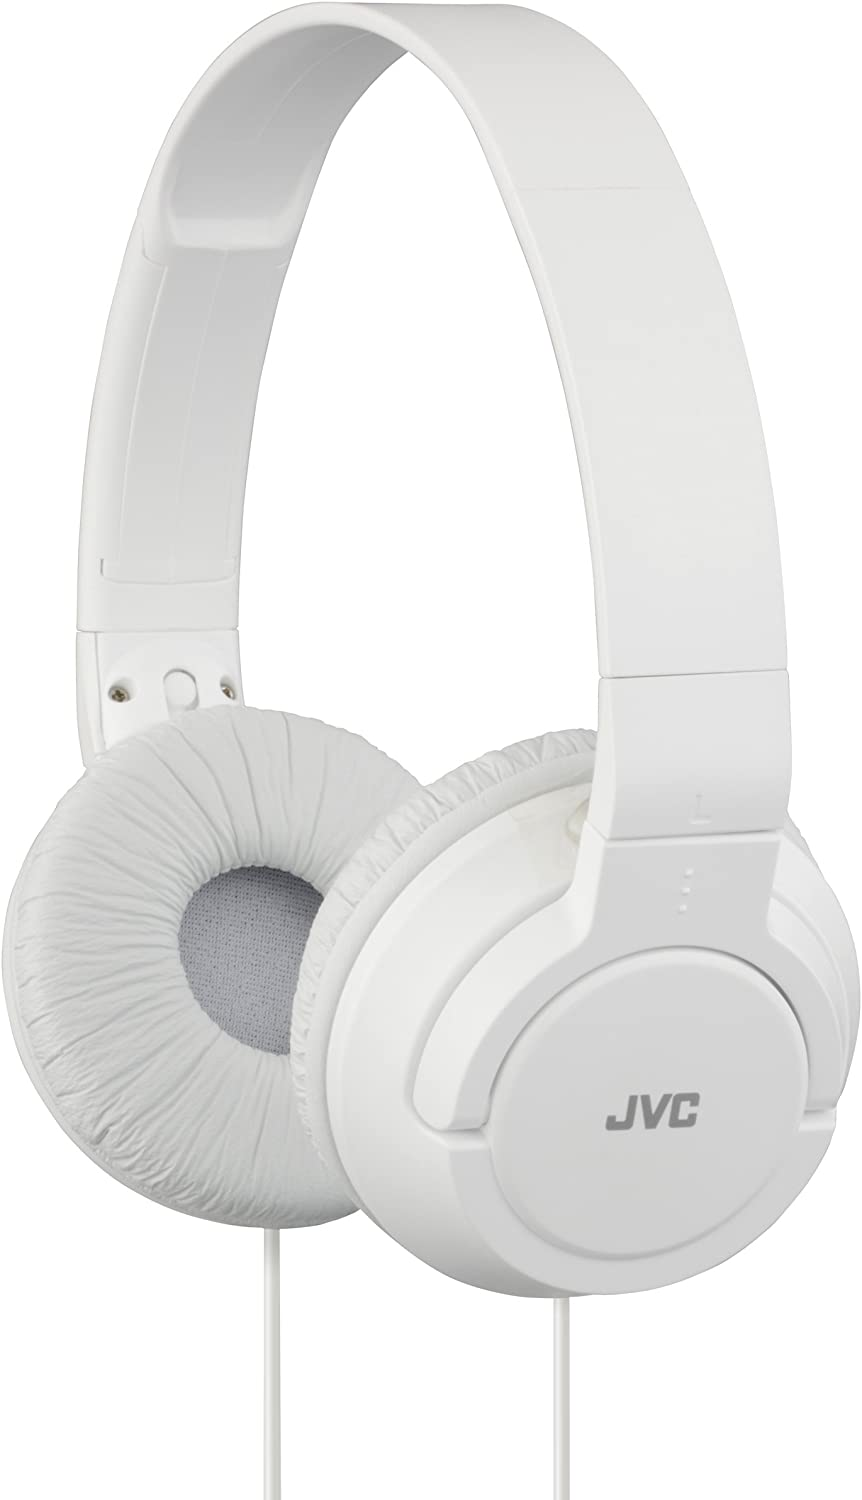 Auriculares plegables JVC HA-S180-W color blanco